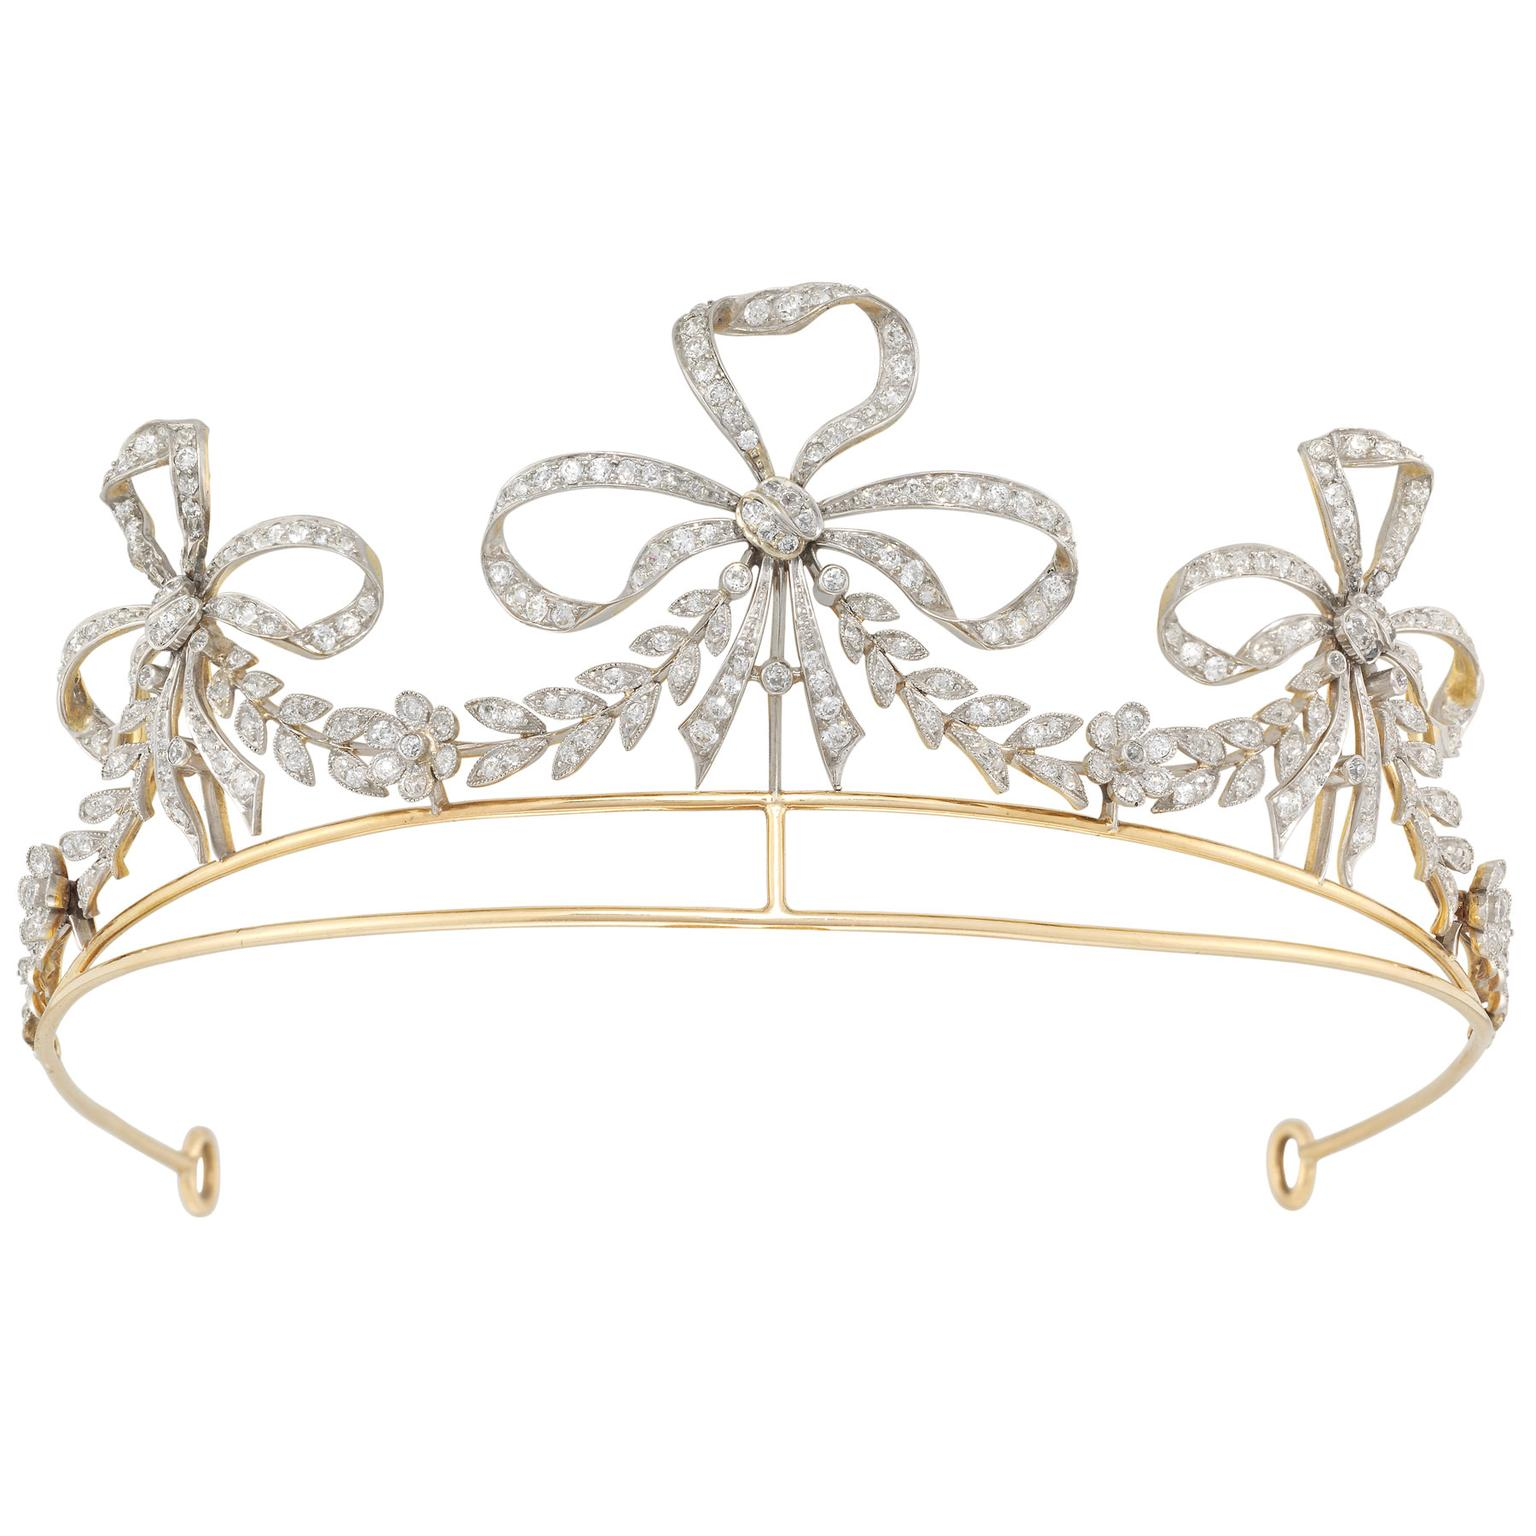 Bentley & Skinner 20th century American scroll tiara with diamond ribbon motifs